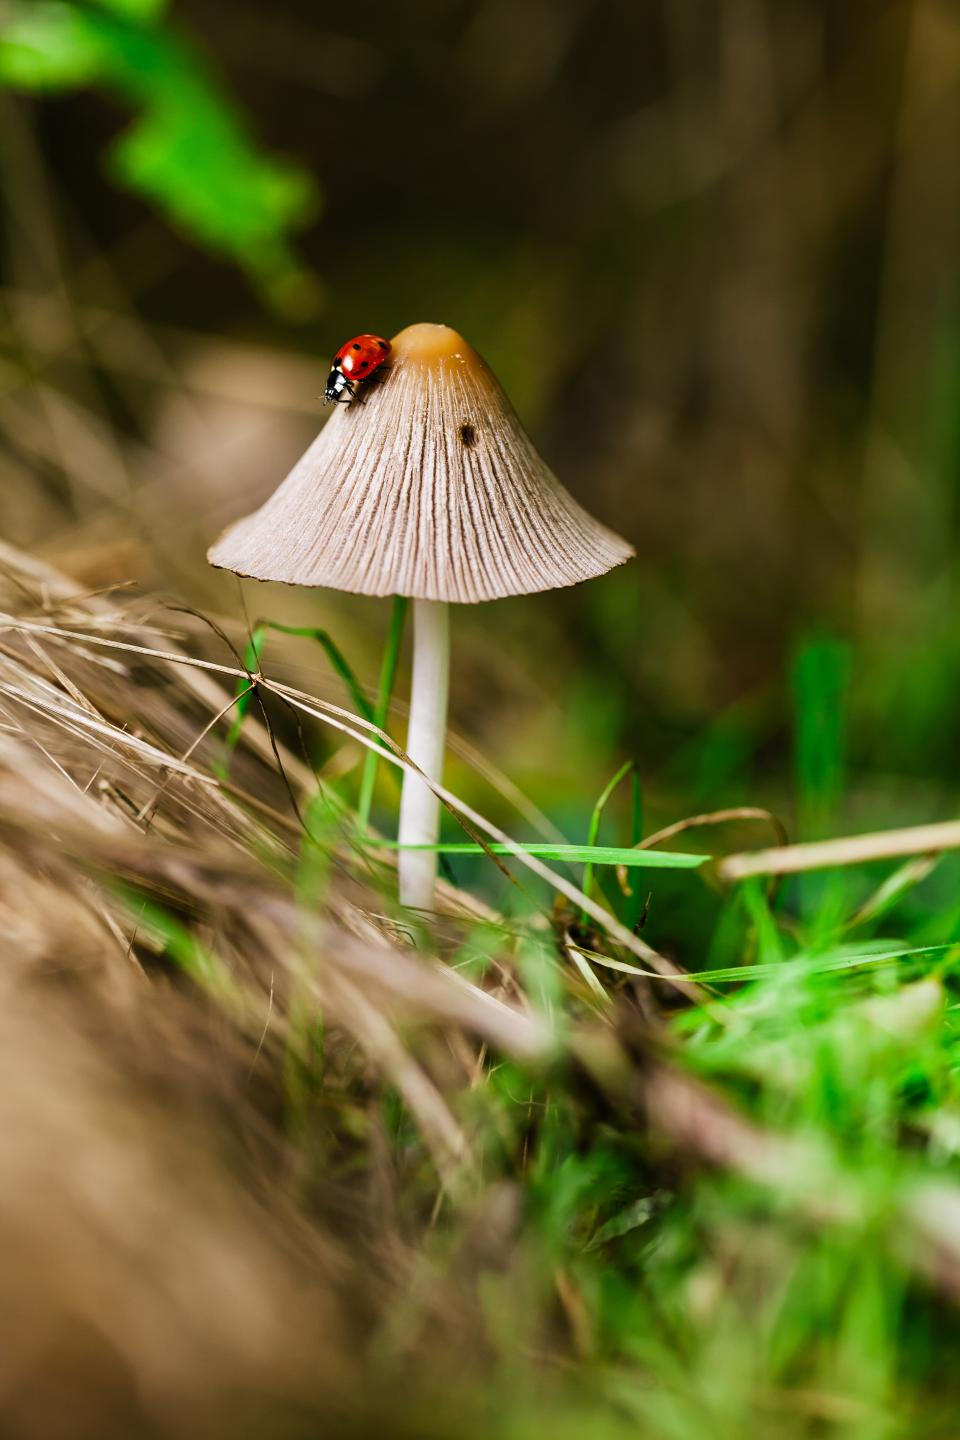 plants nature mushrooms grass insect ladybug still bokeh